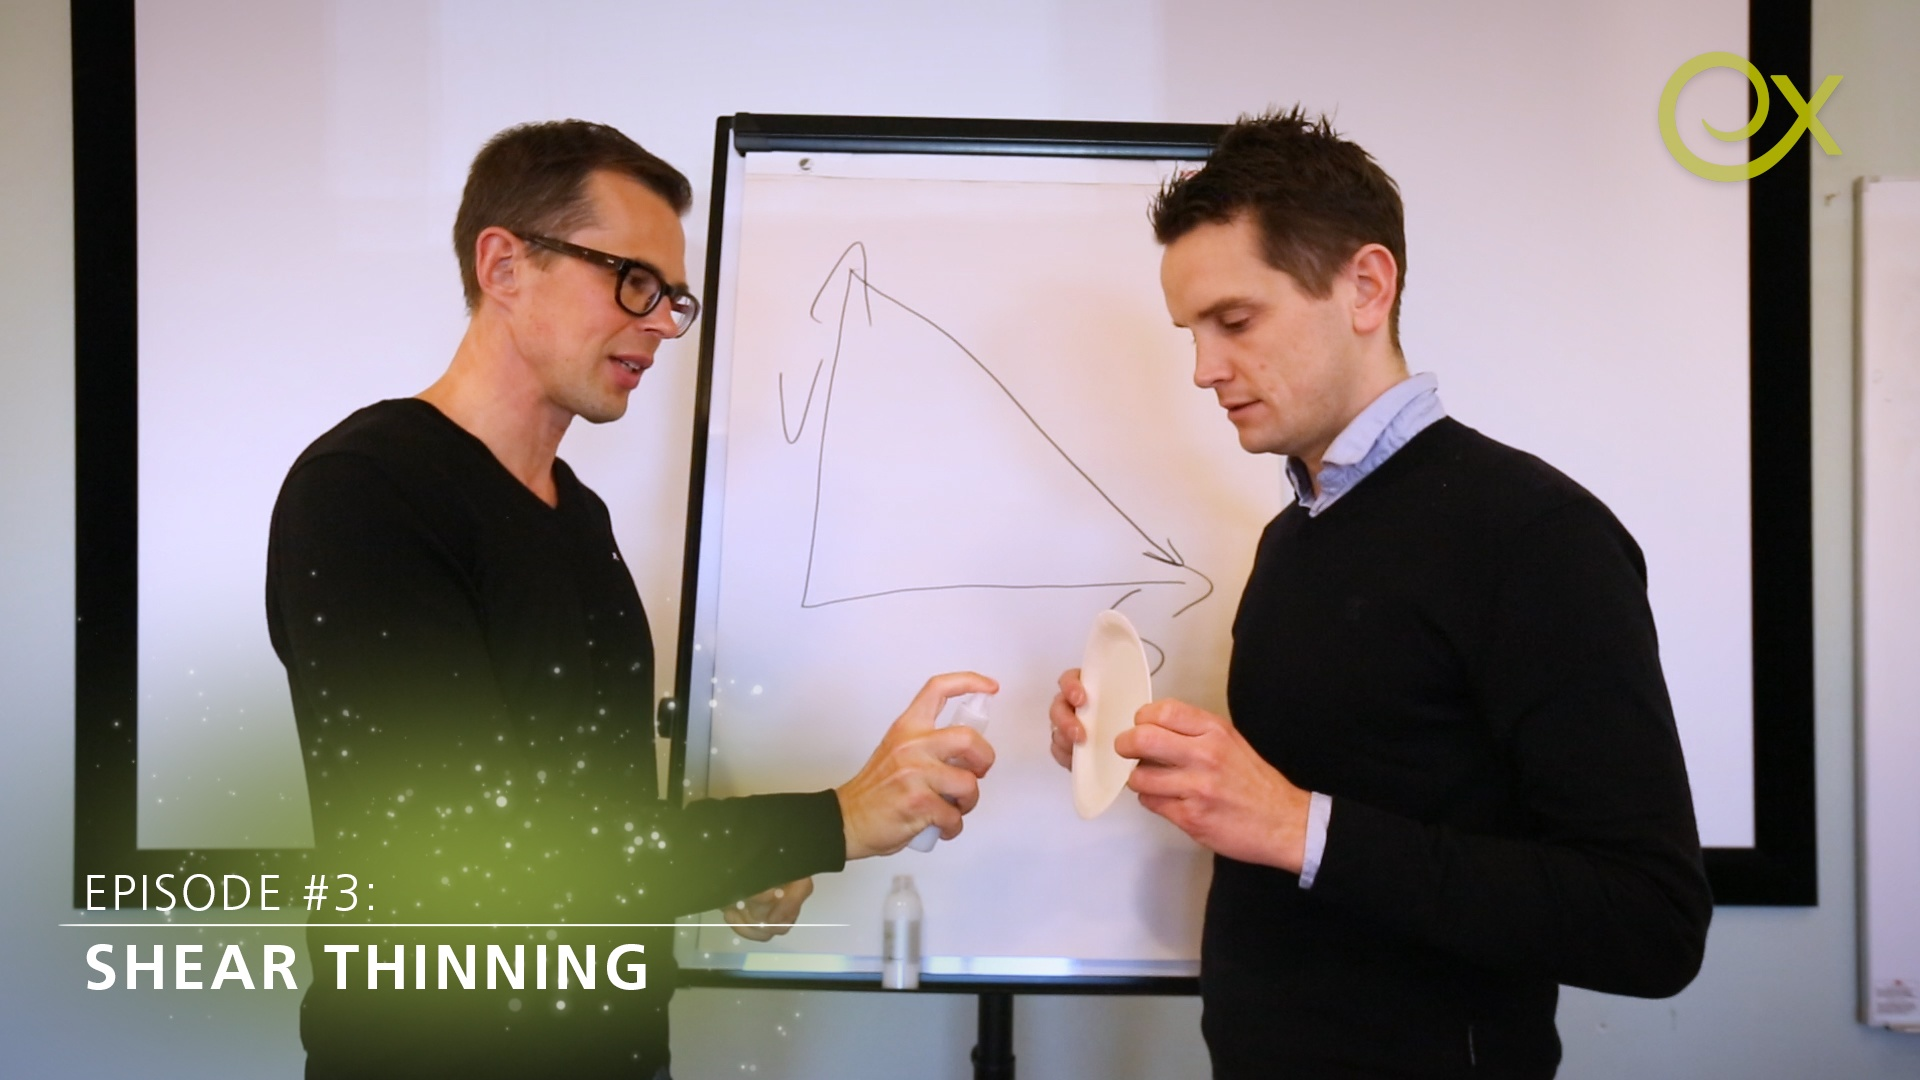 [VIDEO] Topic Tuesday: Shear thinning properties from nanocellulose : why sag resistance and good leveling can be achieved